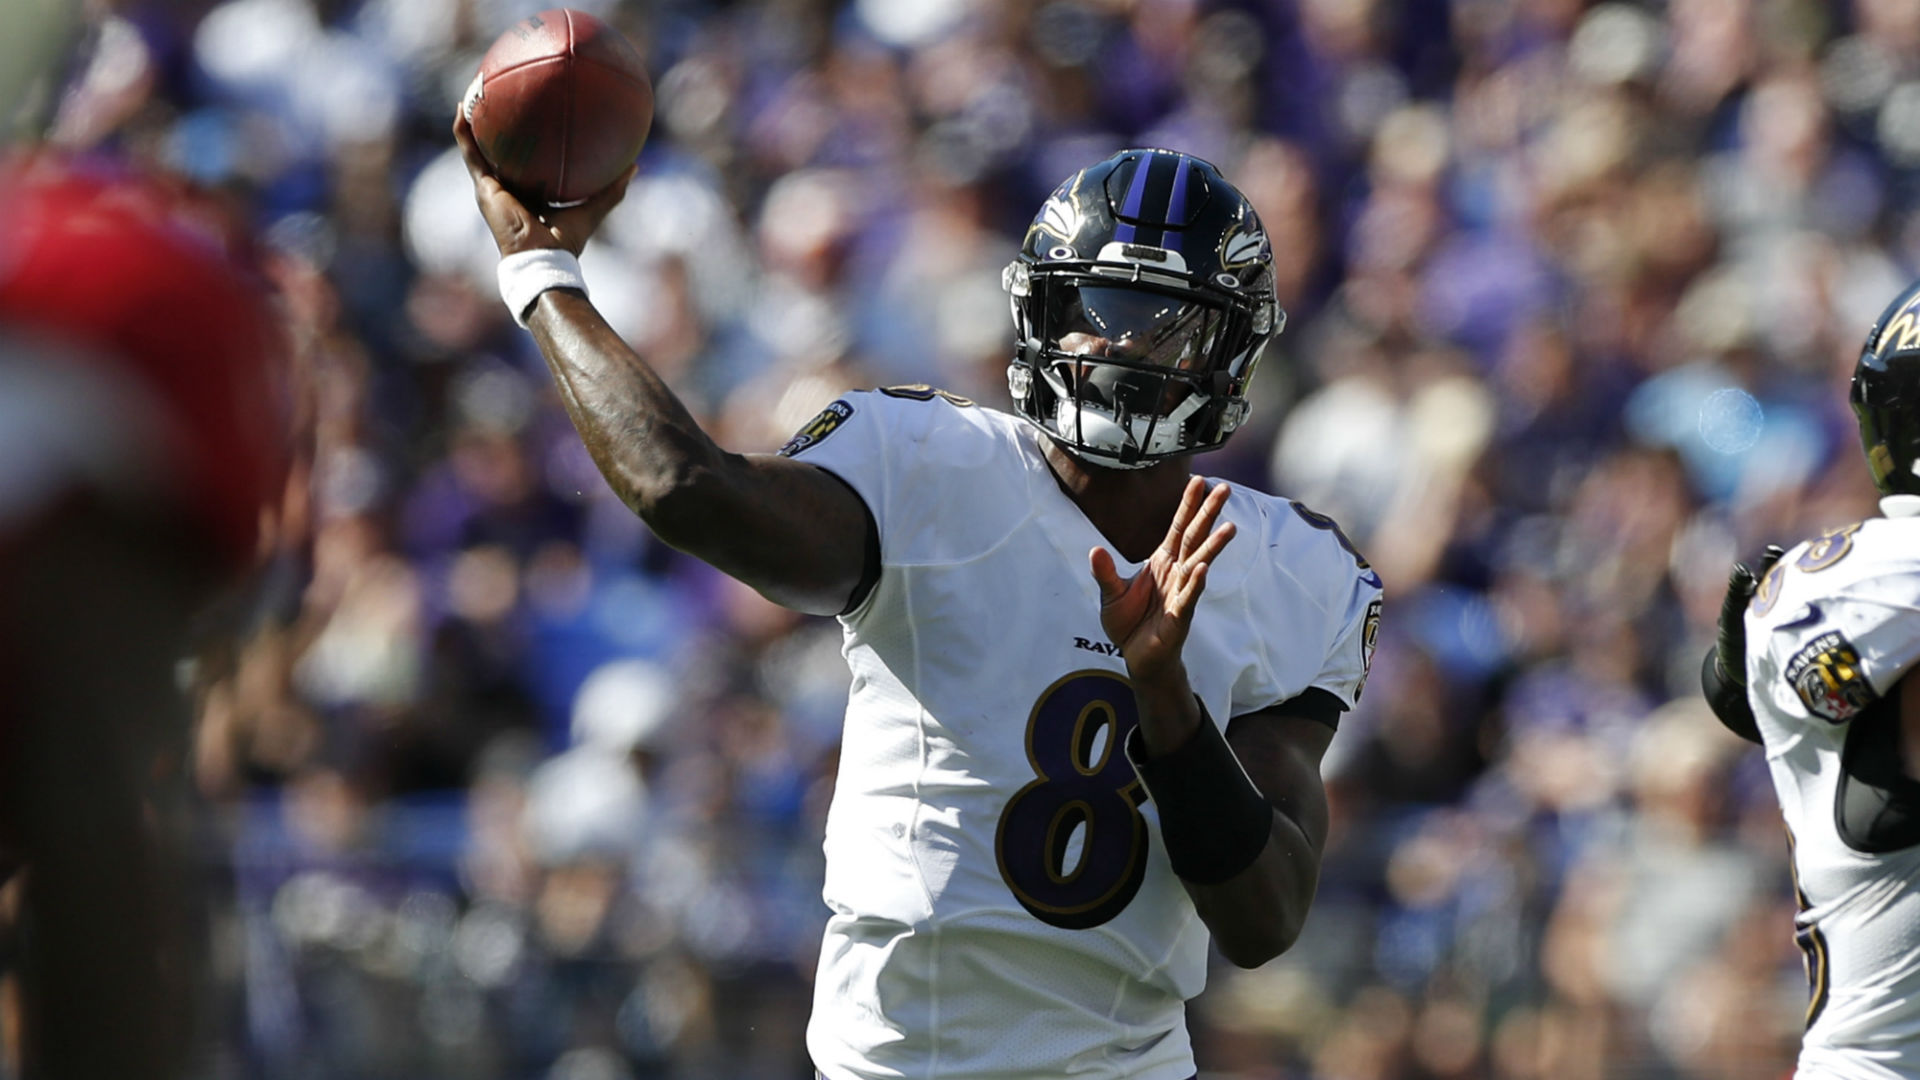 Lamar Jackson's record-breaking start to 2019 season raises a new kind of question